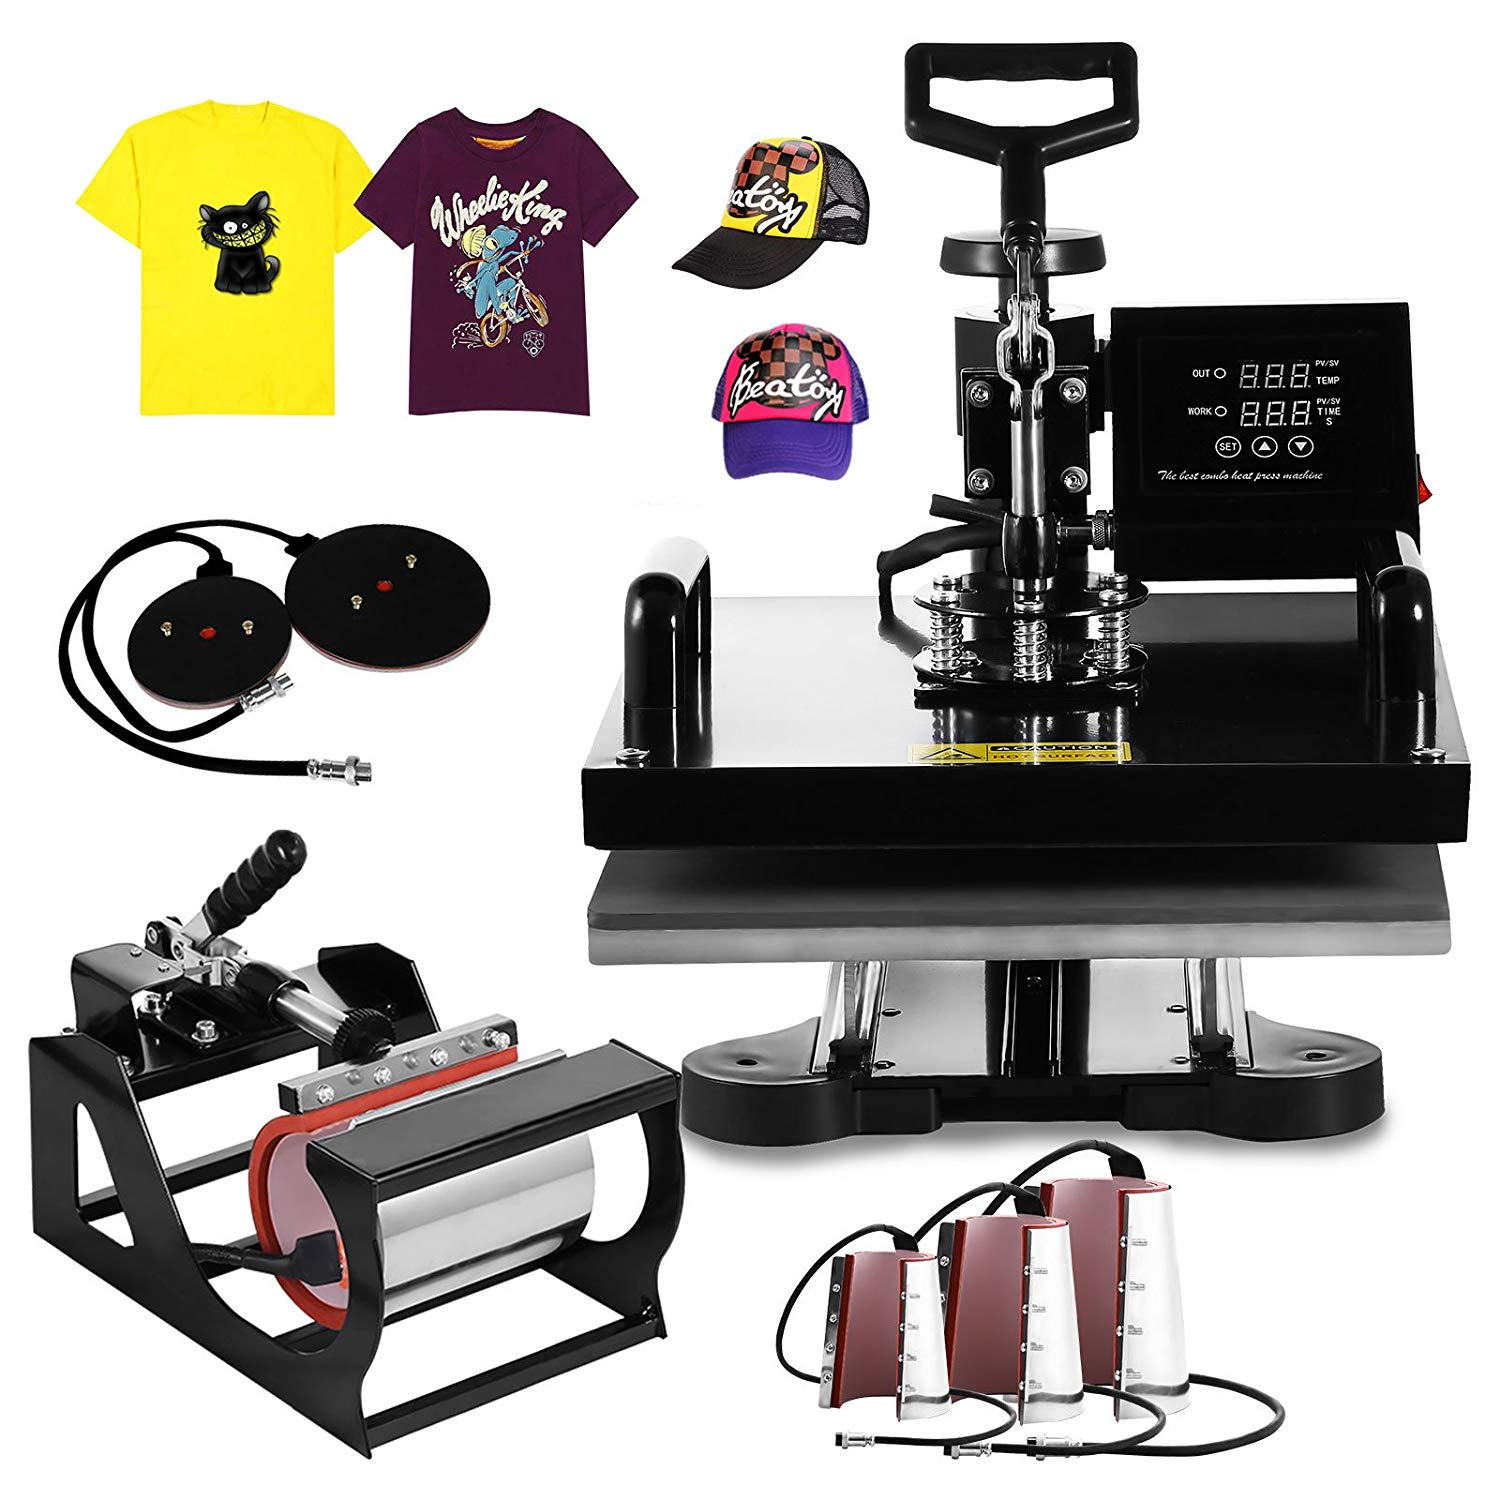 XFMT 15x12 inch Heat Press Machine 1200W Multifunction Sublimation Digital Heat Transfer Press Machine Swing Away T-Shirt Hat Mug (15X15Inch 8 in 1)